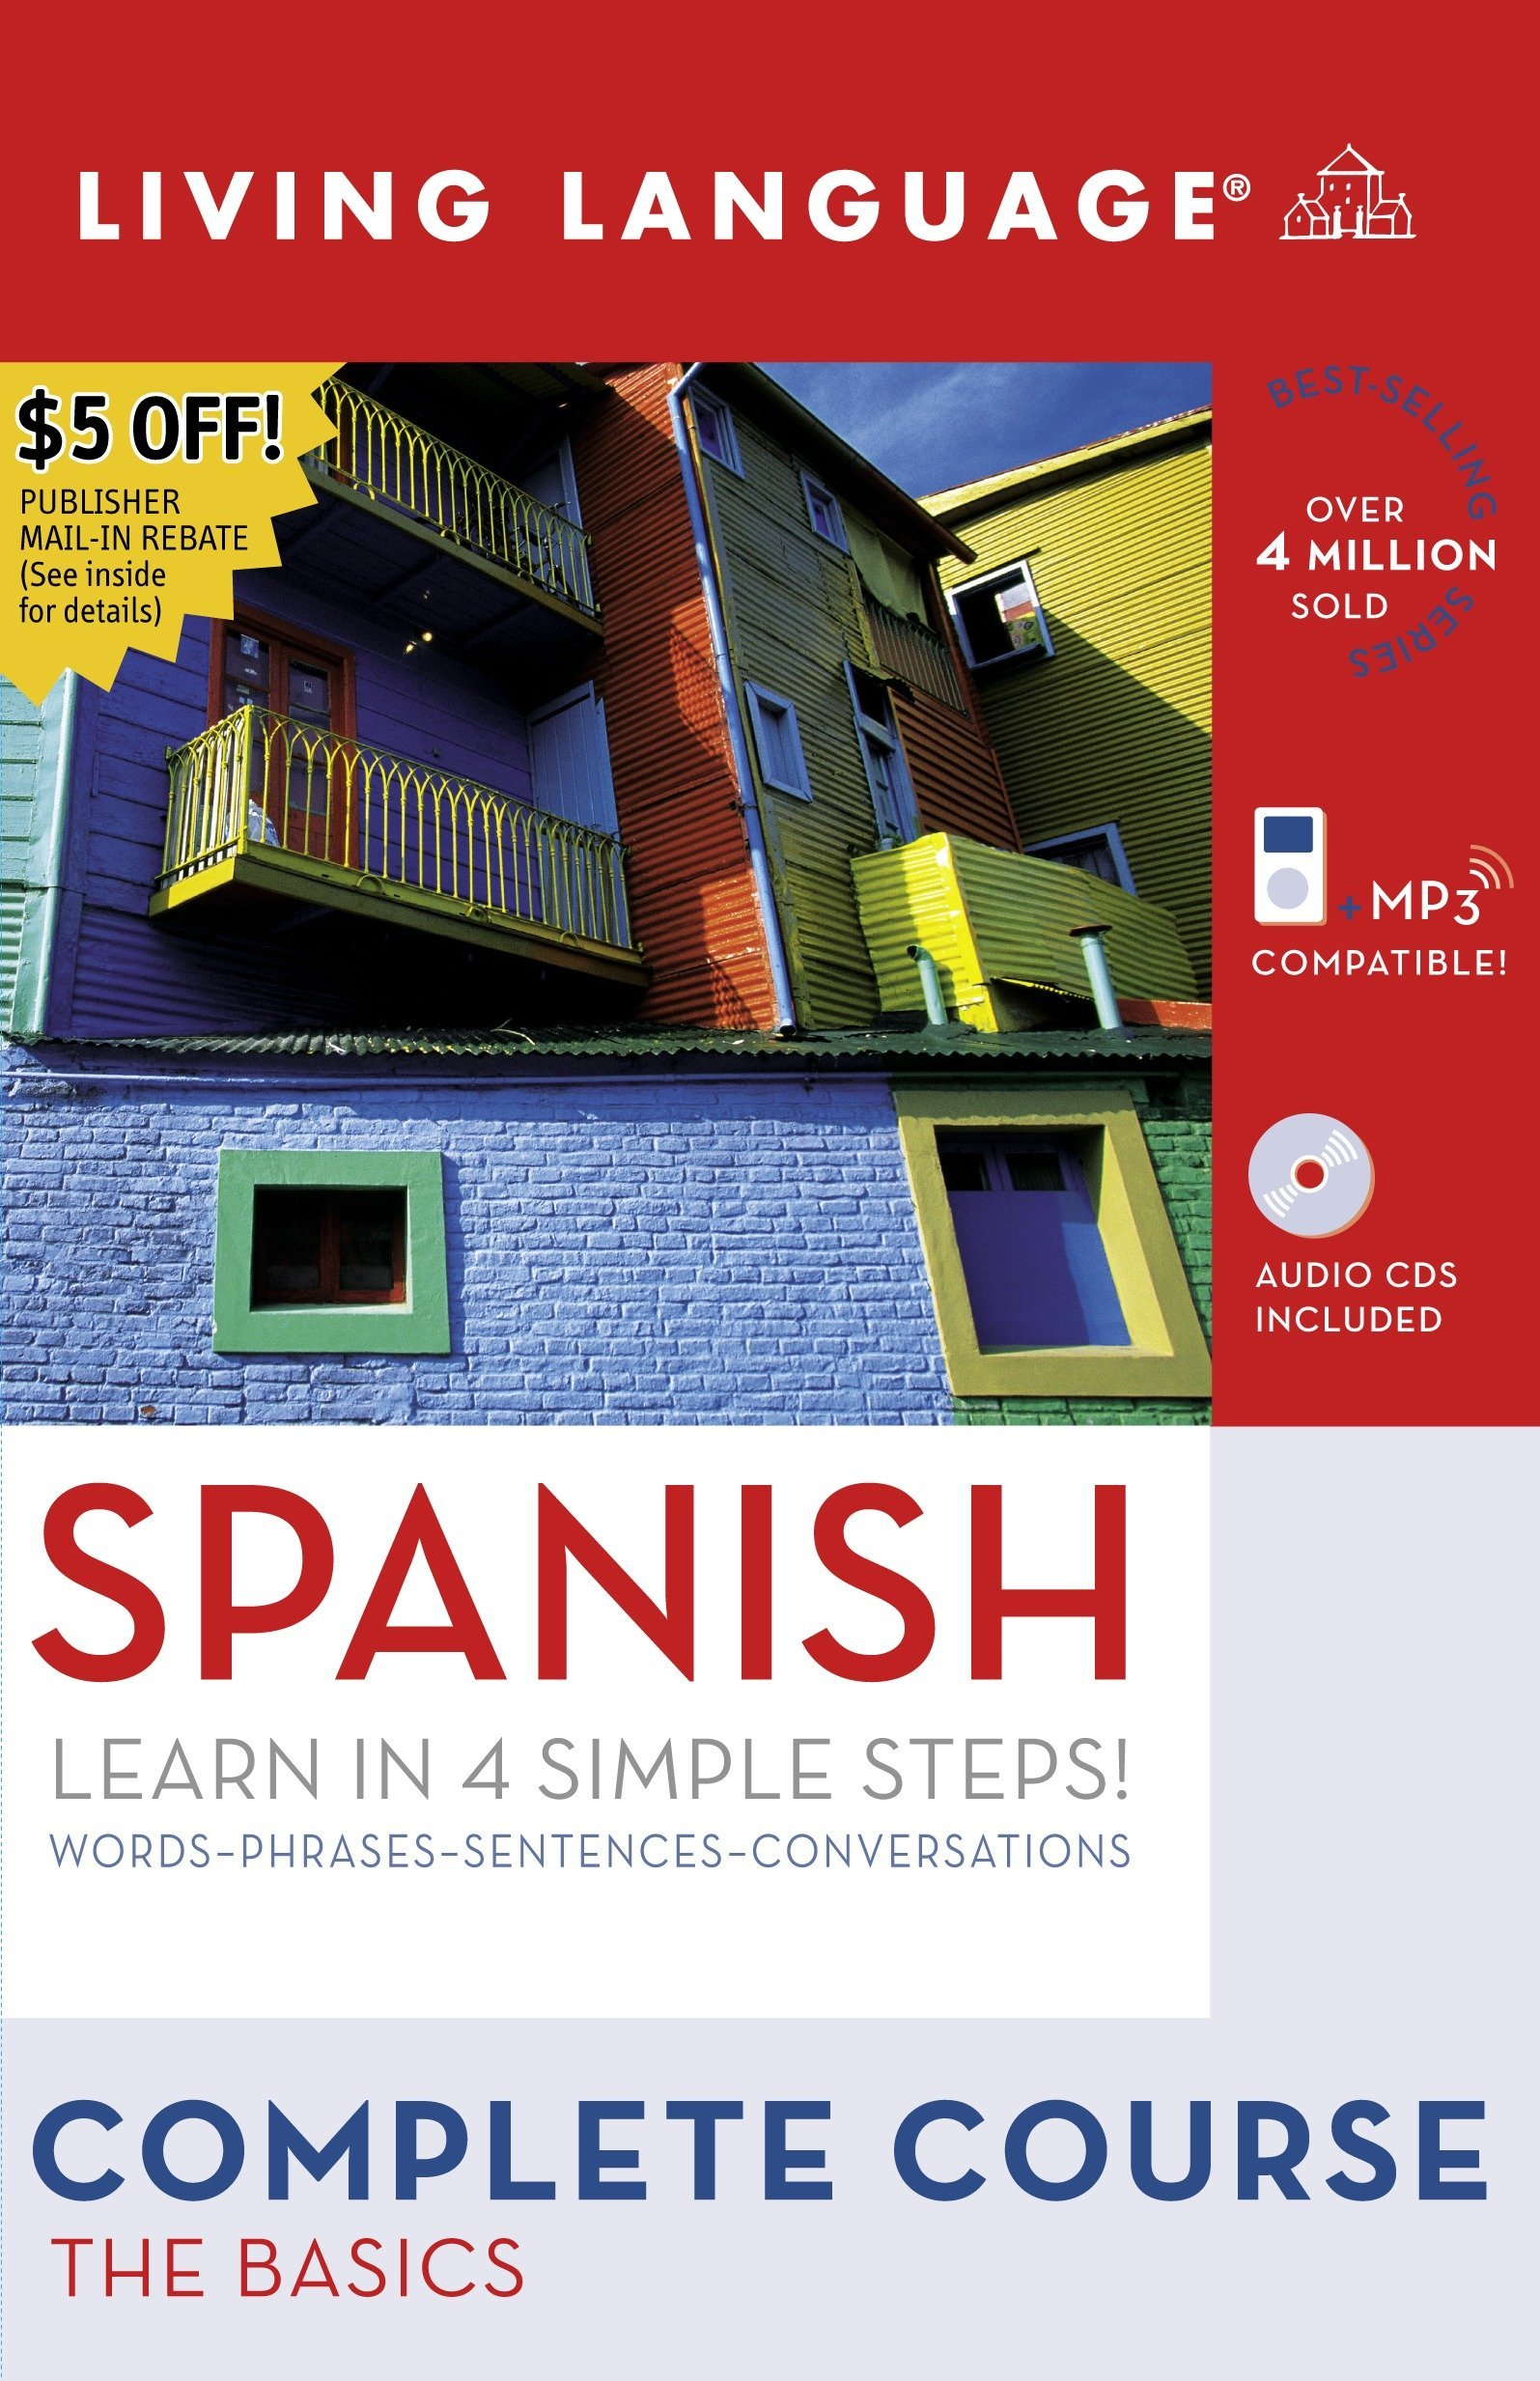 Complete Spanish: The Basics (Book and CD Set): Includes Coursebook, 4 Audio CDs, and Learner's Dictionary (Complete Basic Courses)